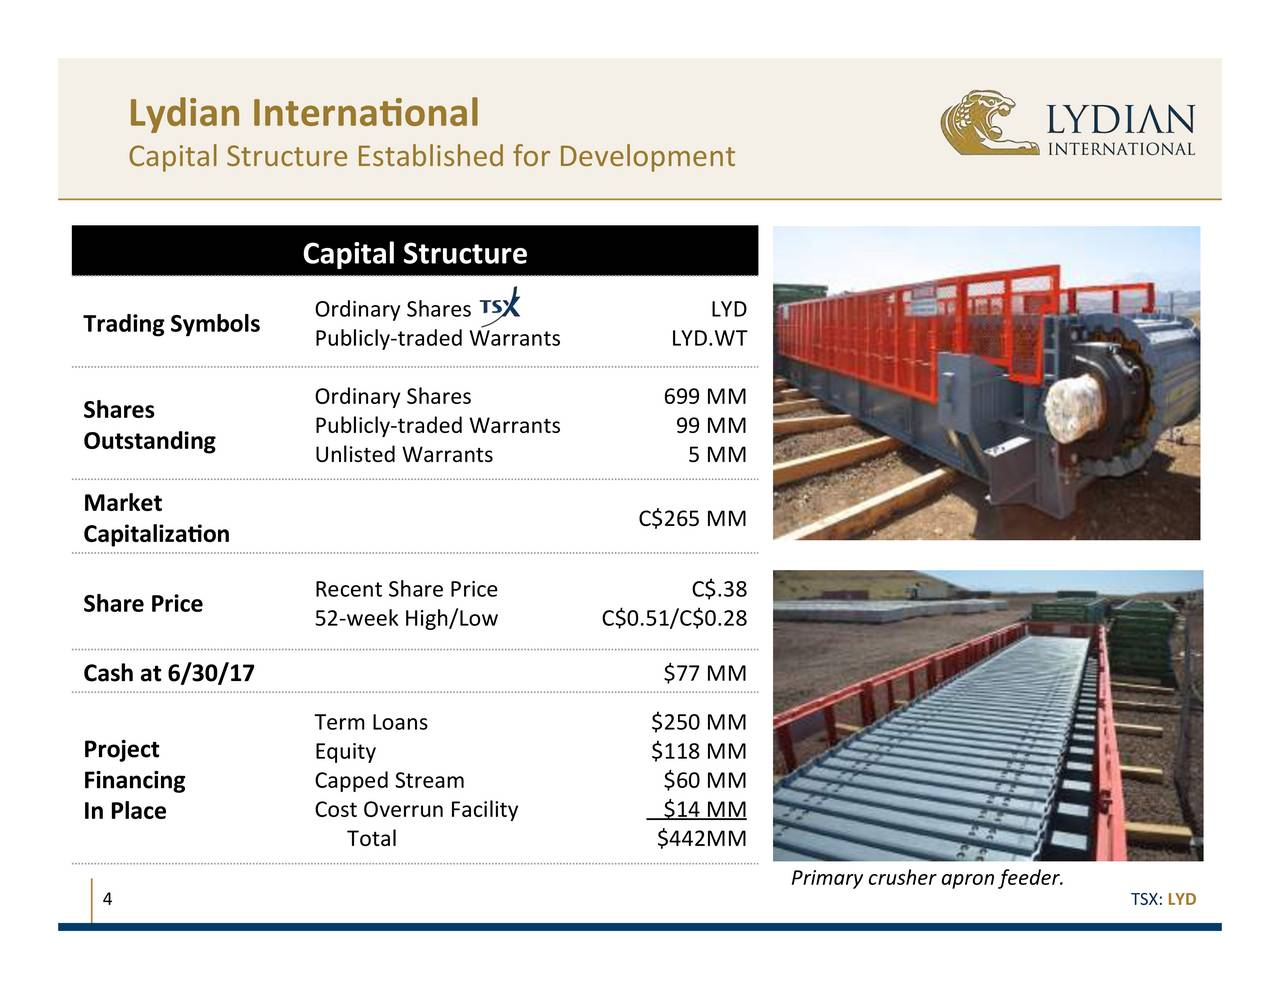 Lydian International Lydif Presents At 2017 Precious Metals Summit